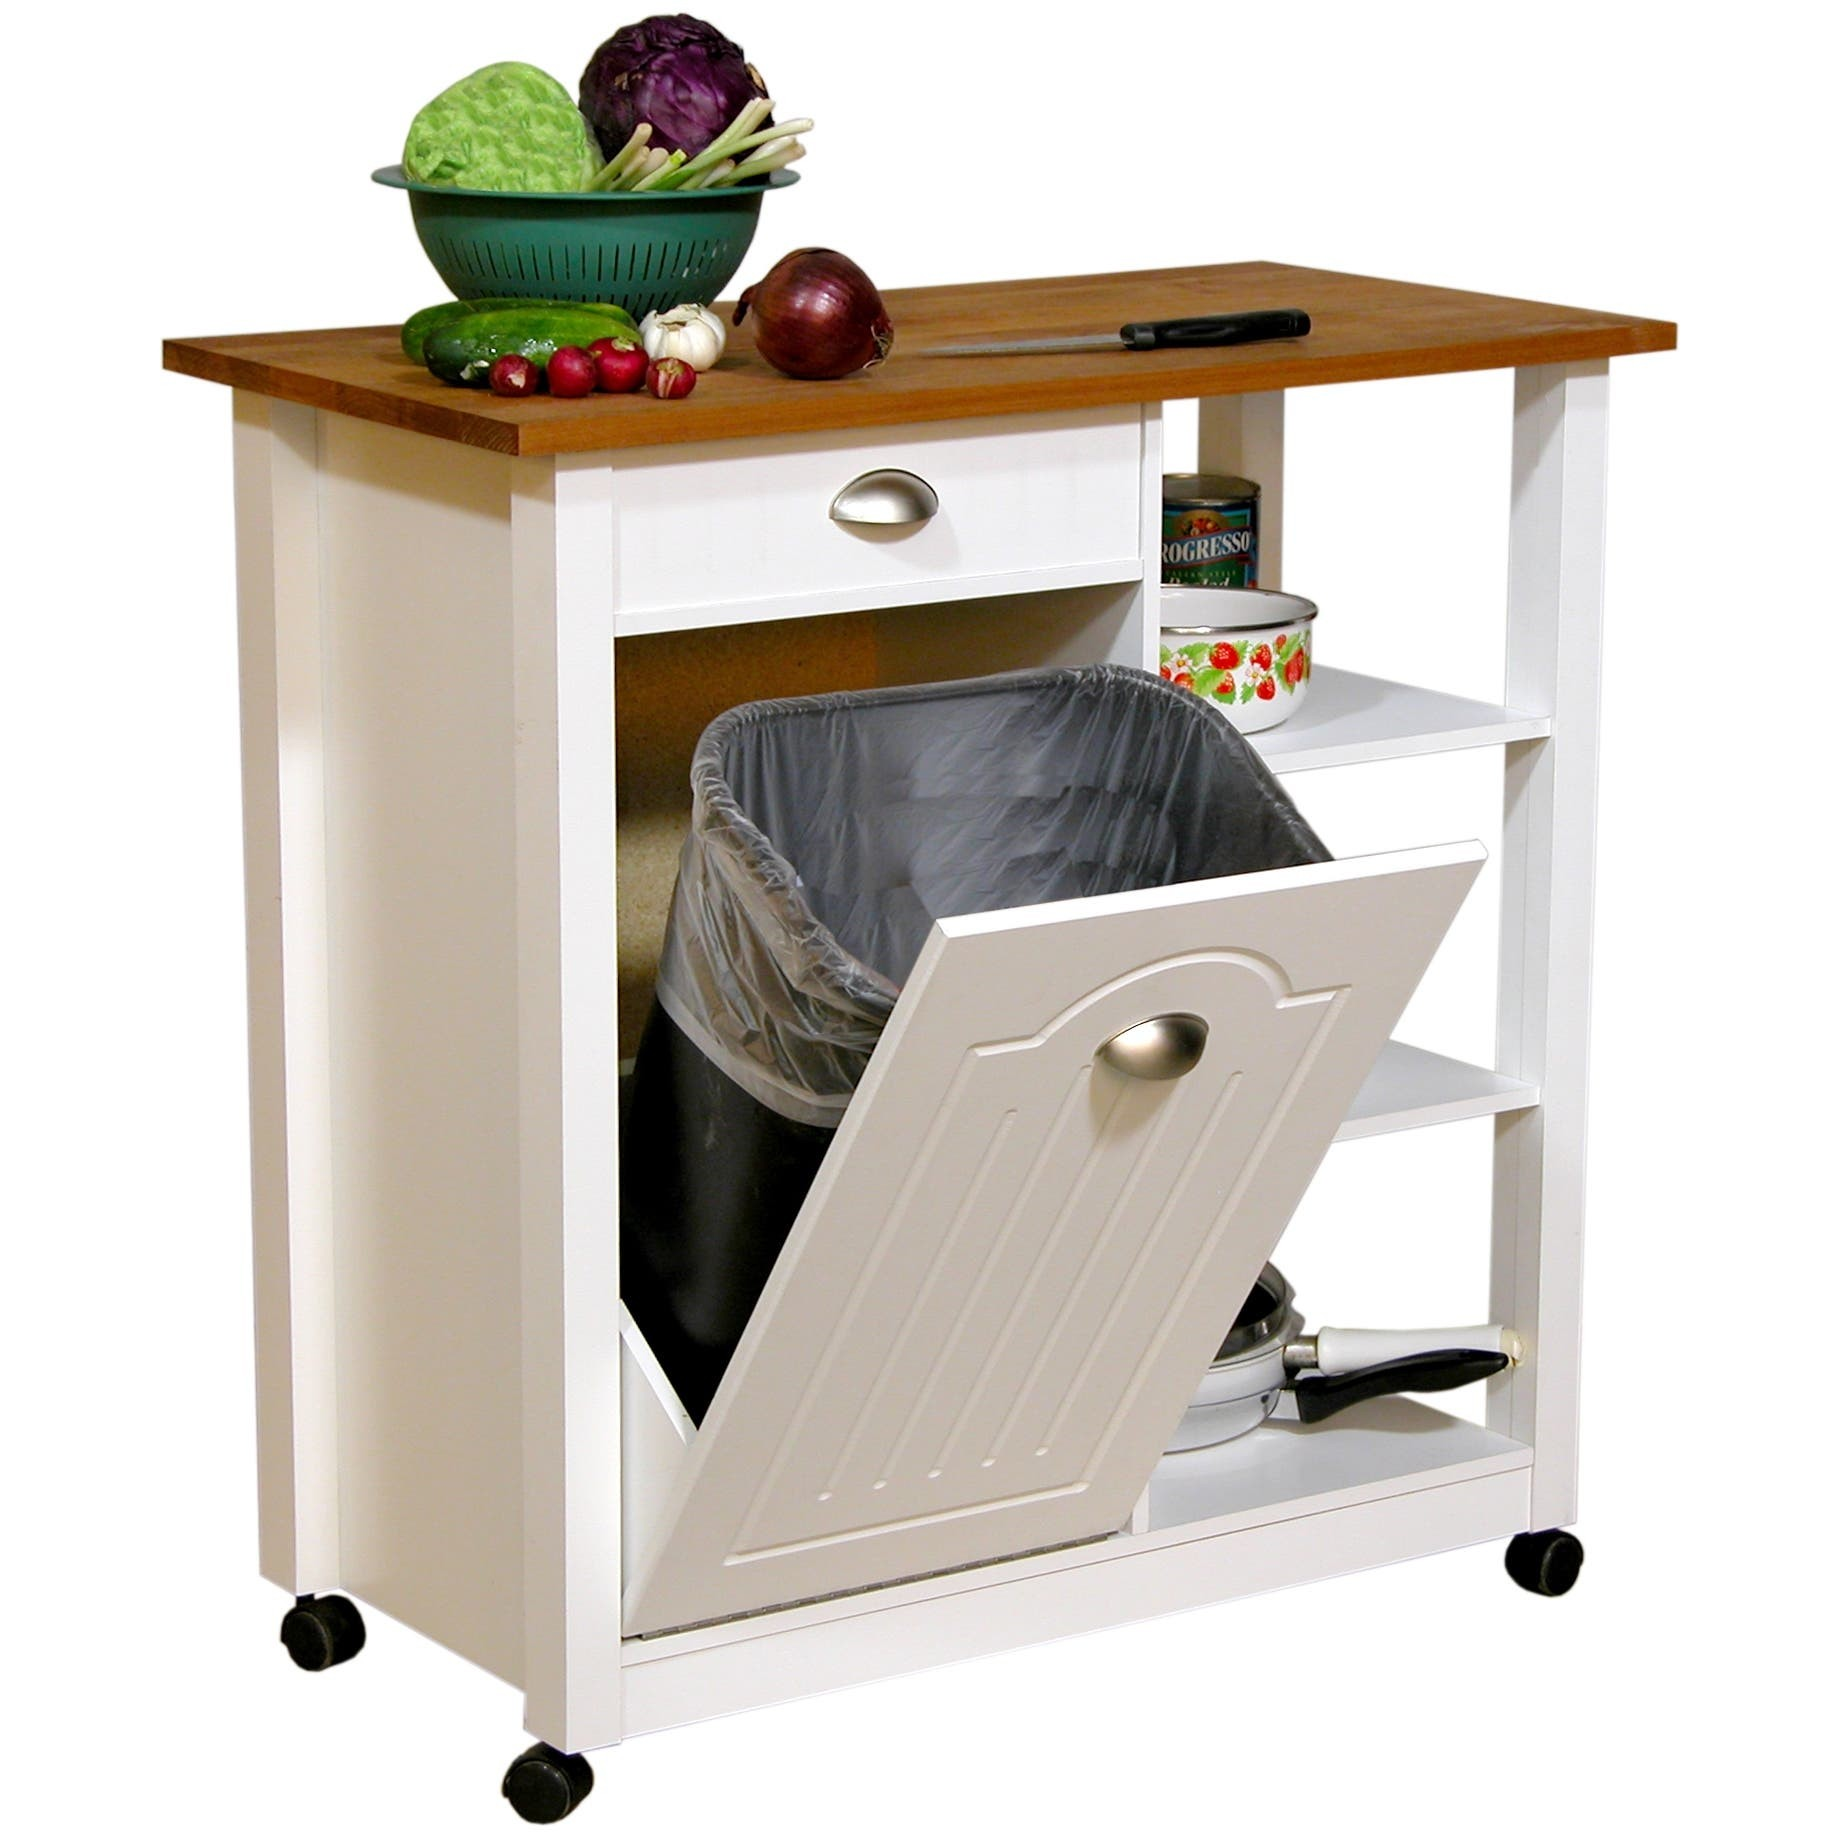 Kitchen Island With Garbage Bin - Foter